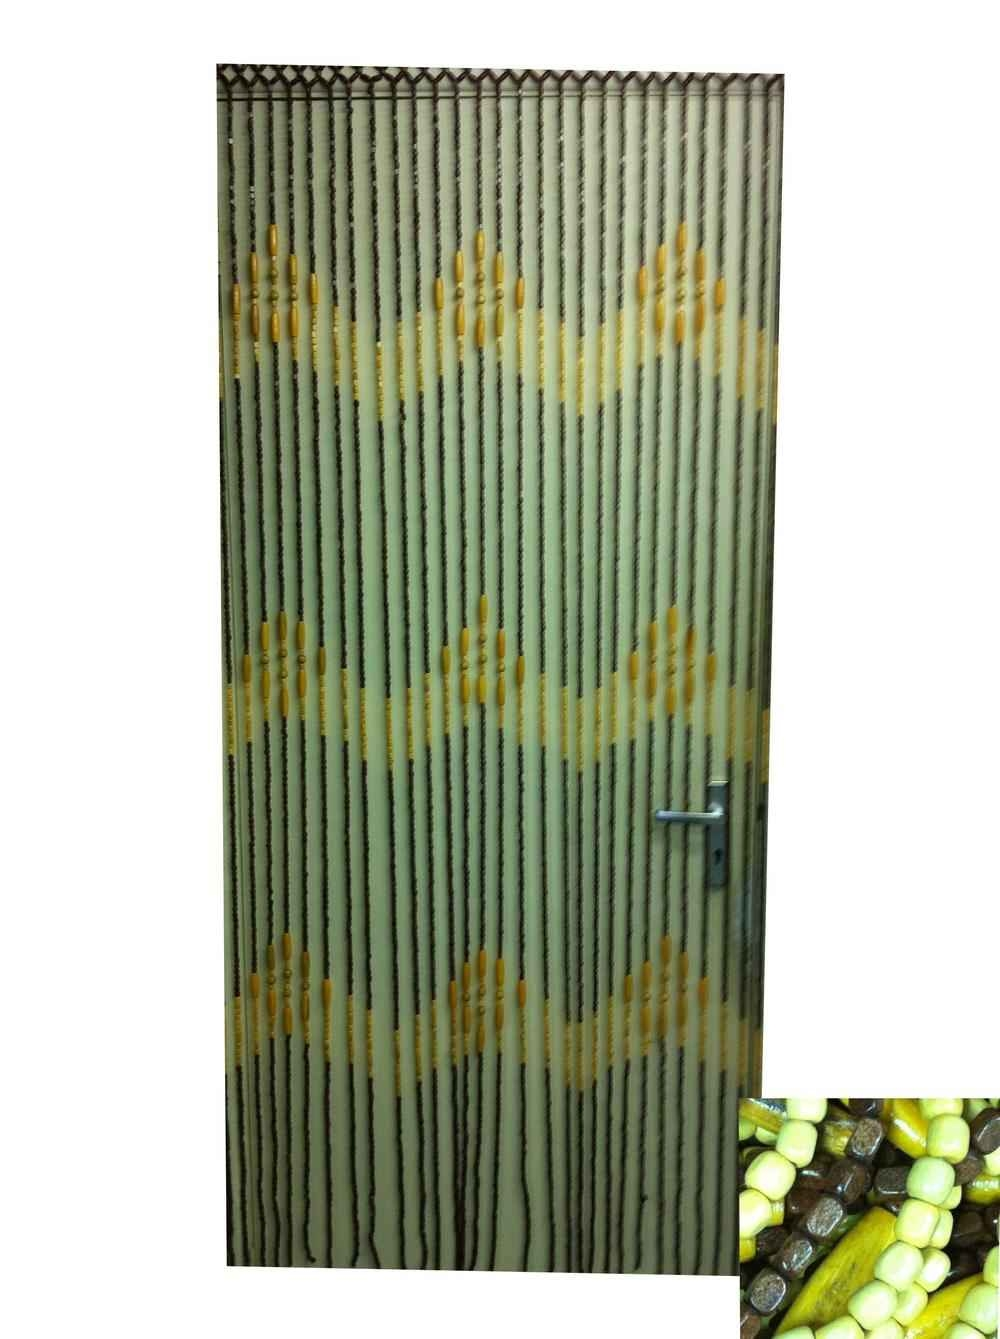 Beaded Door Curtains Design Ideas And Decor With Doorway Curtains (Image 2 of 25)